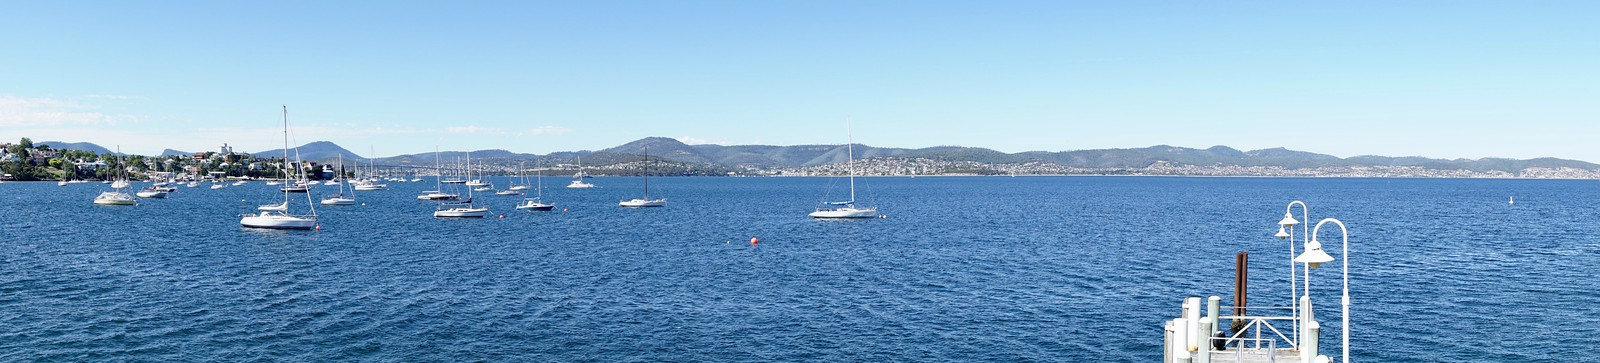 Hobart Water View